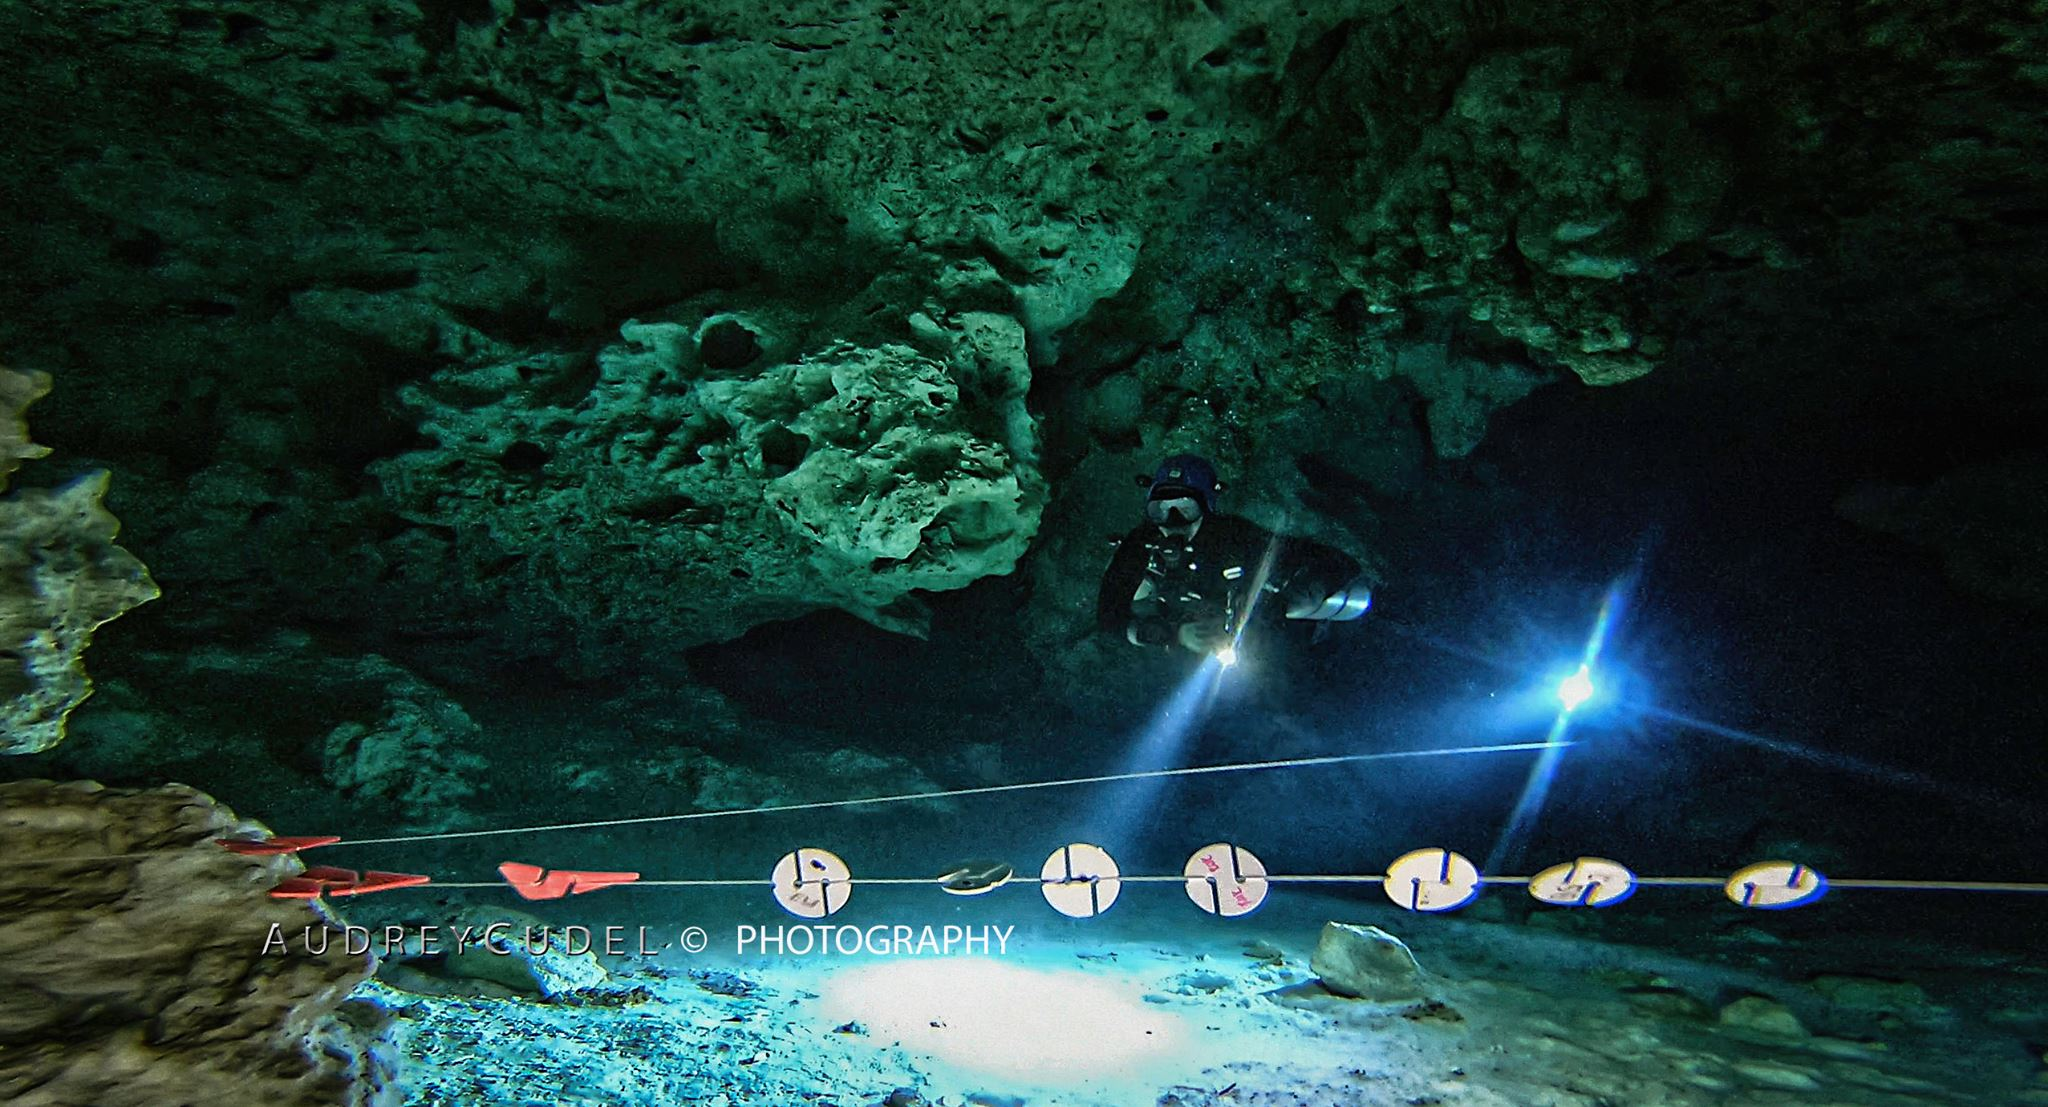 - Emma & Stephan (Tech Divers) SM, Cavern, Intro & Full Cave courses from 2016 on … 'We have been training with Audrey (Gozo Technical Diving) for a couple of years now (Intro to Cave, Side Mount and then Full Cave). We both feel really lucky to have learnt so much from someone who clearly knows all things cave and side mount. Personally she has massively improved my confidence in the water. Training has been hard work (as it should be!) but we also had a lot of fun and Audrey has become a friend to both of us. She always goes the extra mile to help us out and takes absolutely amazing photos, which we always look forward to seeing at the end of the day. We can not speak highly enough of both Audrey and Gozo Tech...so much so that we have recommended her to all our diving friends in the UK 😊 '